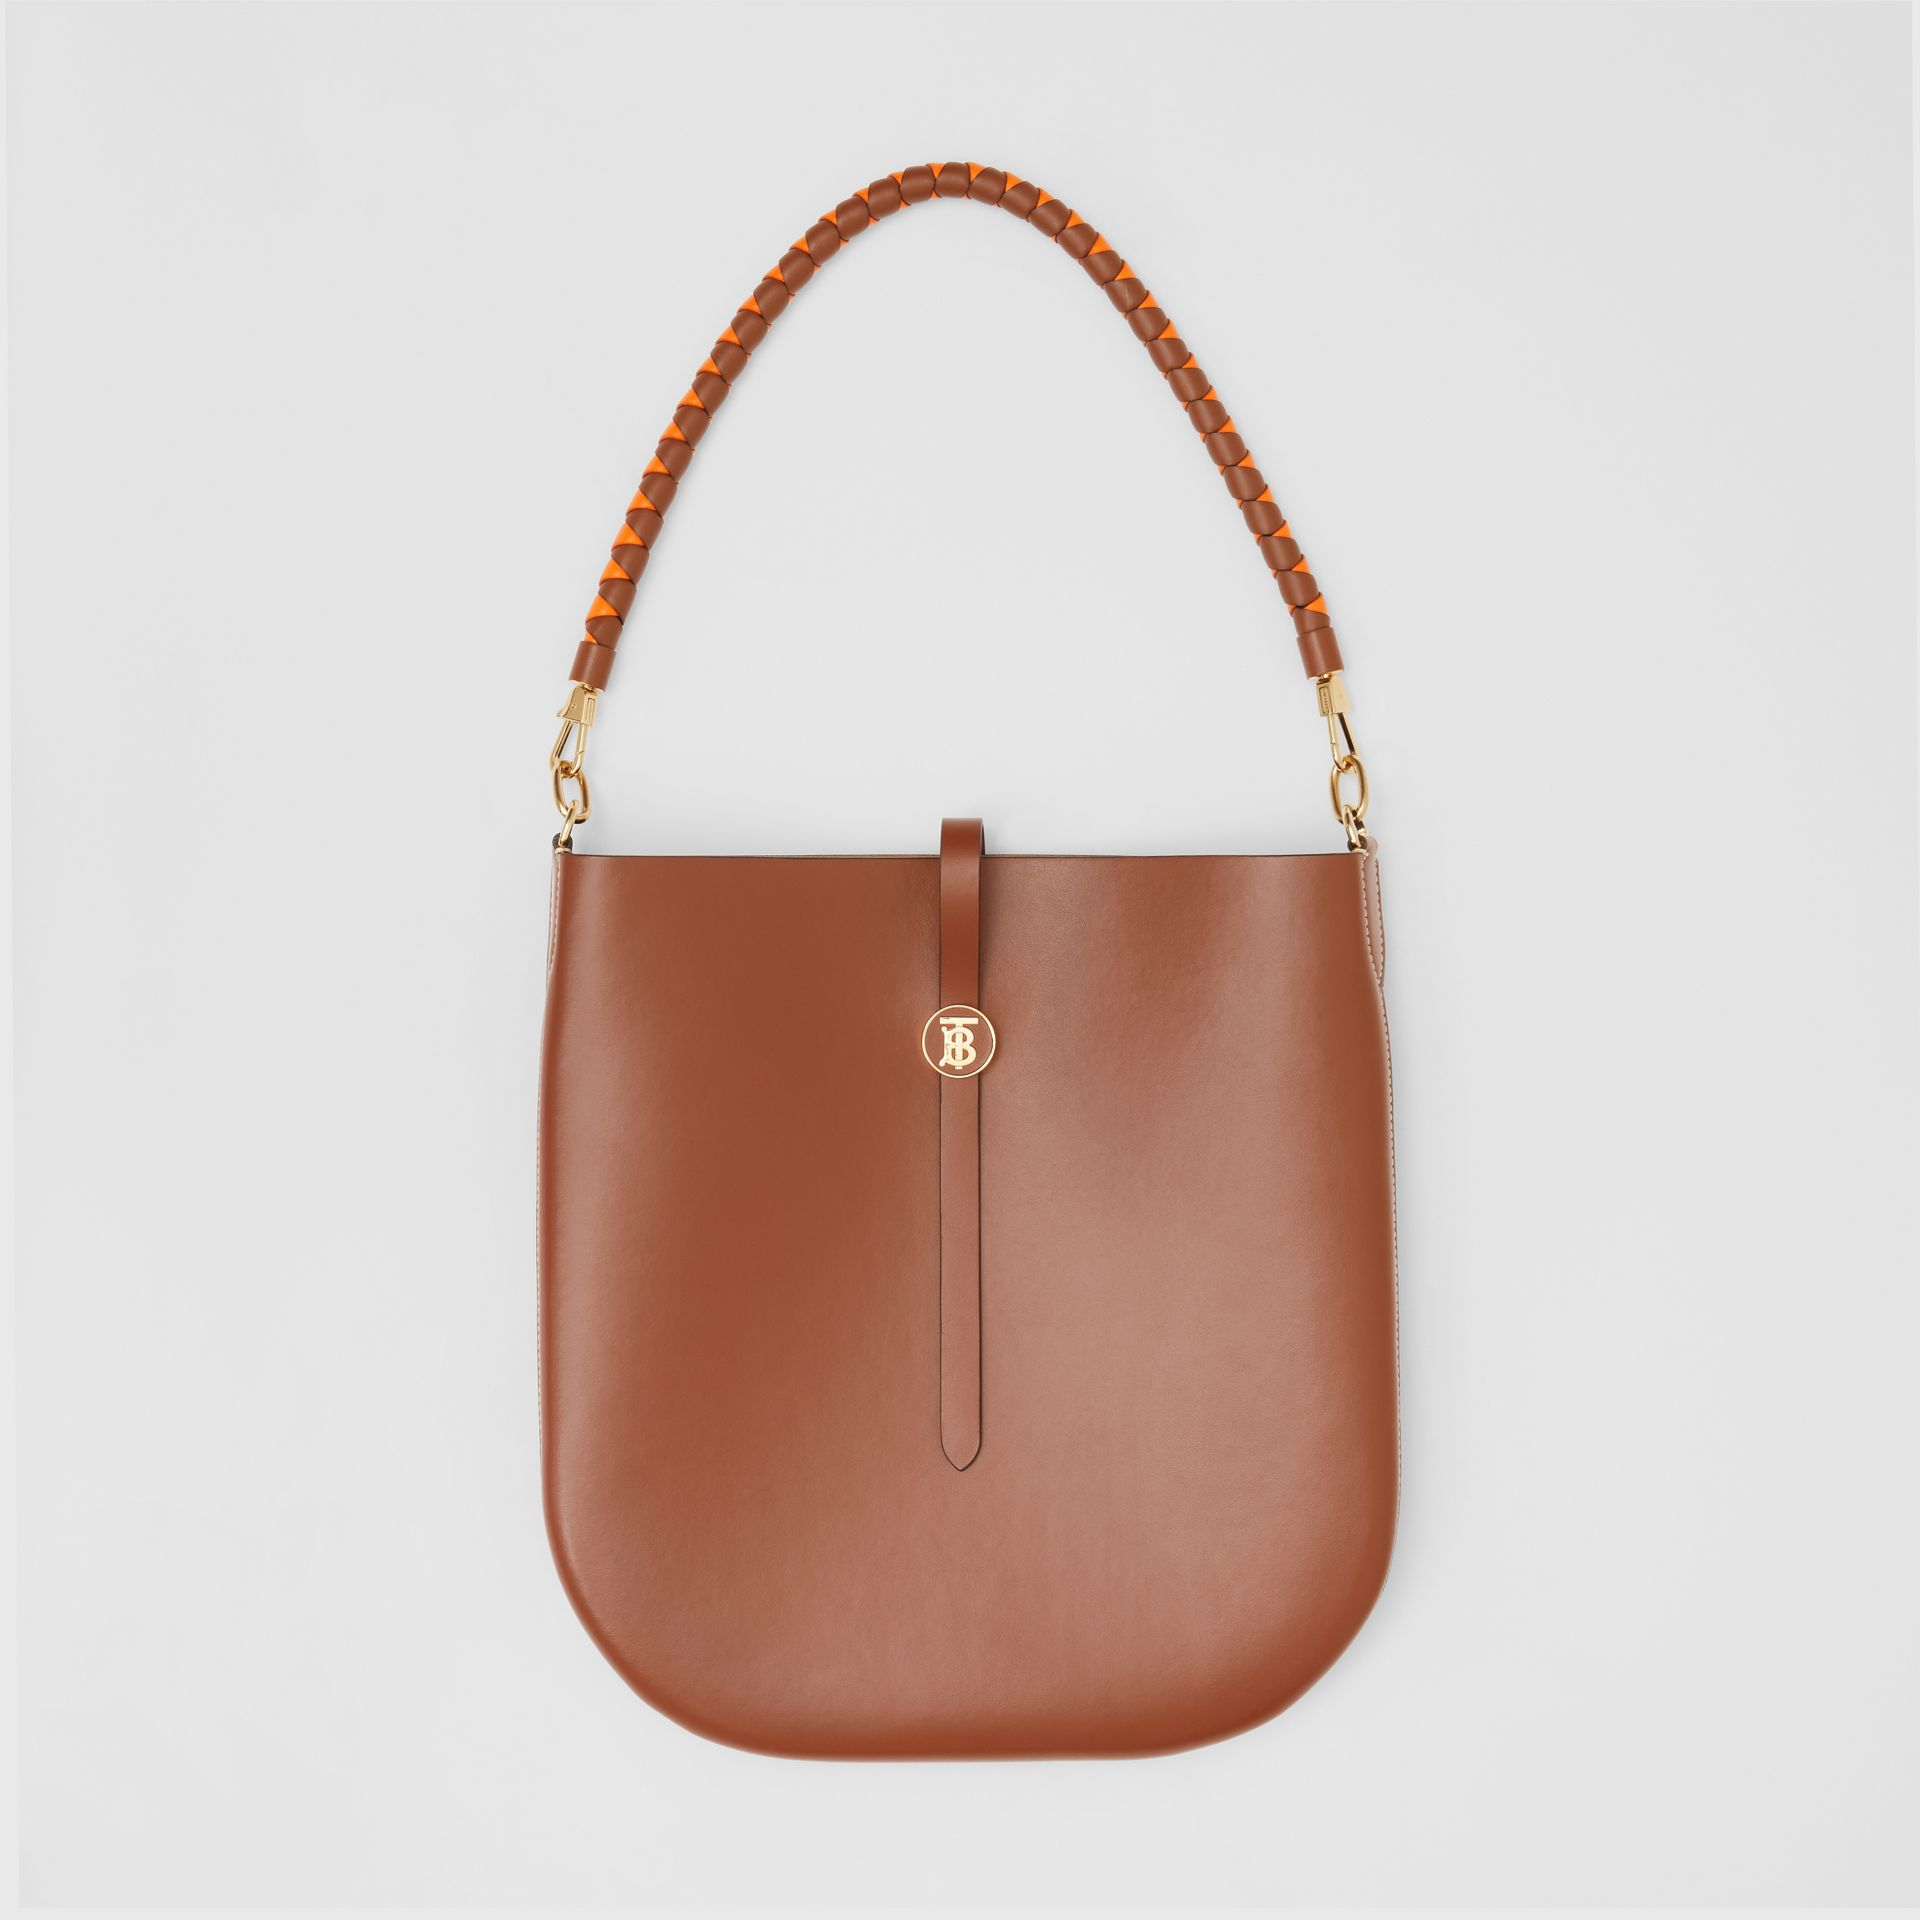 Leather Anne Bag in Tan - Women | Burberry Australia - gallery image 3